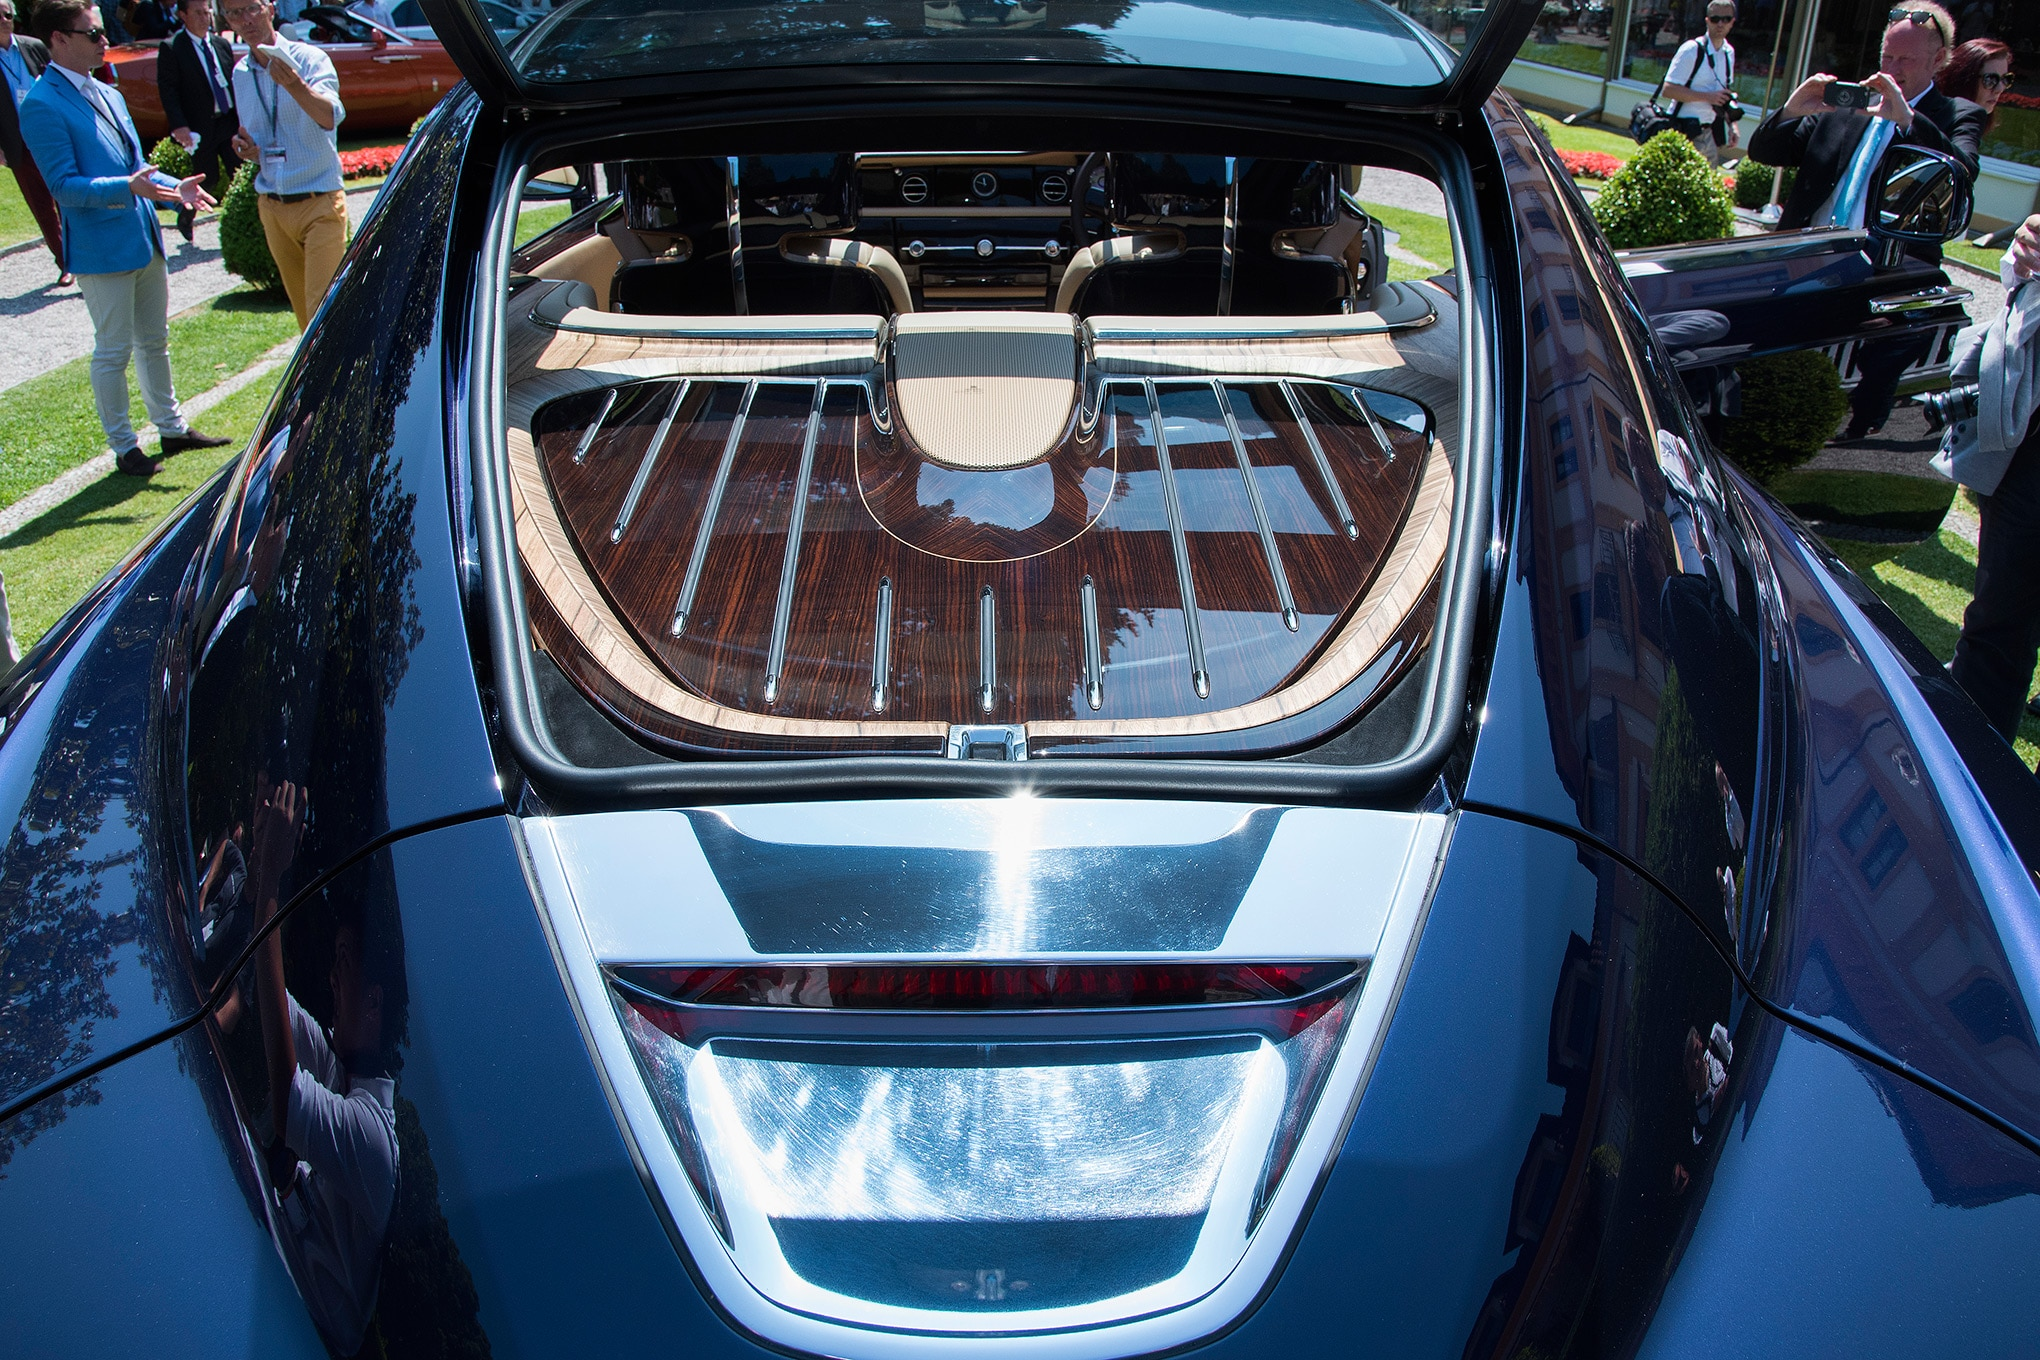 rolls-royce sweptail brings ultra-luxe coach-building into the 21st